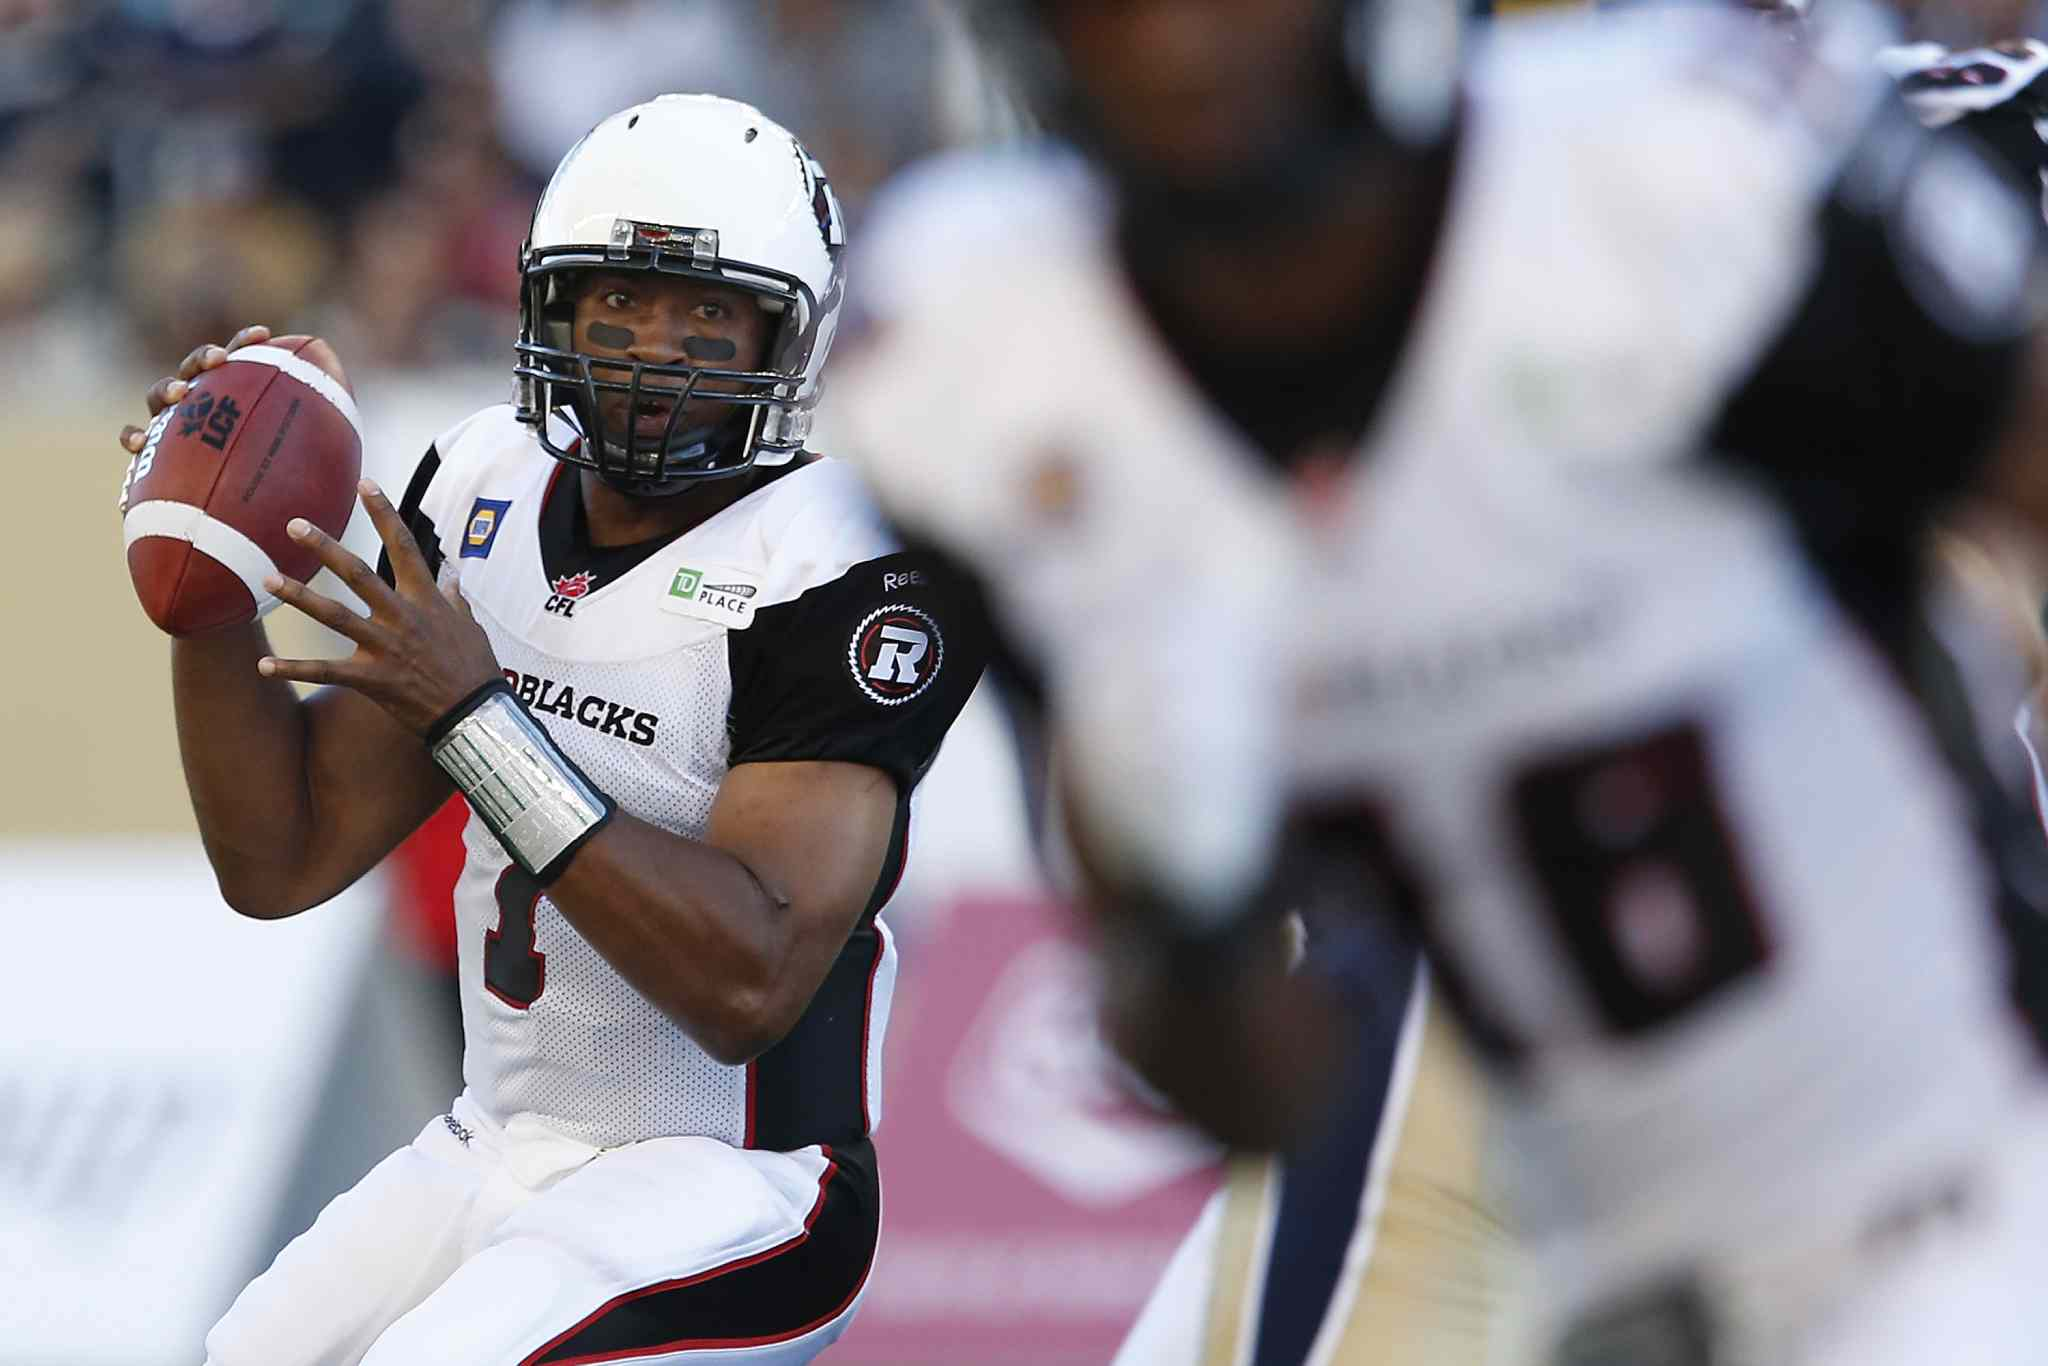 Ottawa Redblacks' quarterback Henry Burris (1) gets set to throw against the Winnipeg Blue Bombers during the first half of Thursday's game at Investors Group Field.